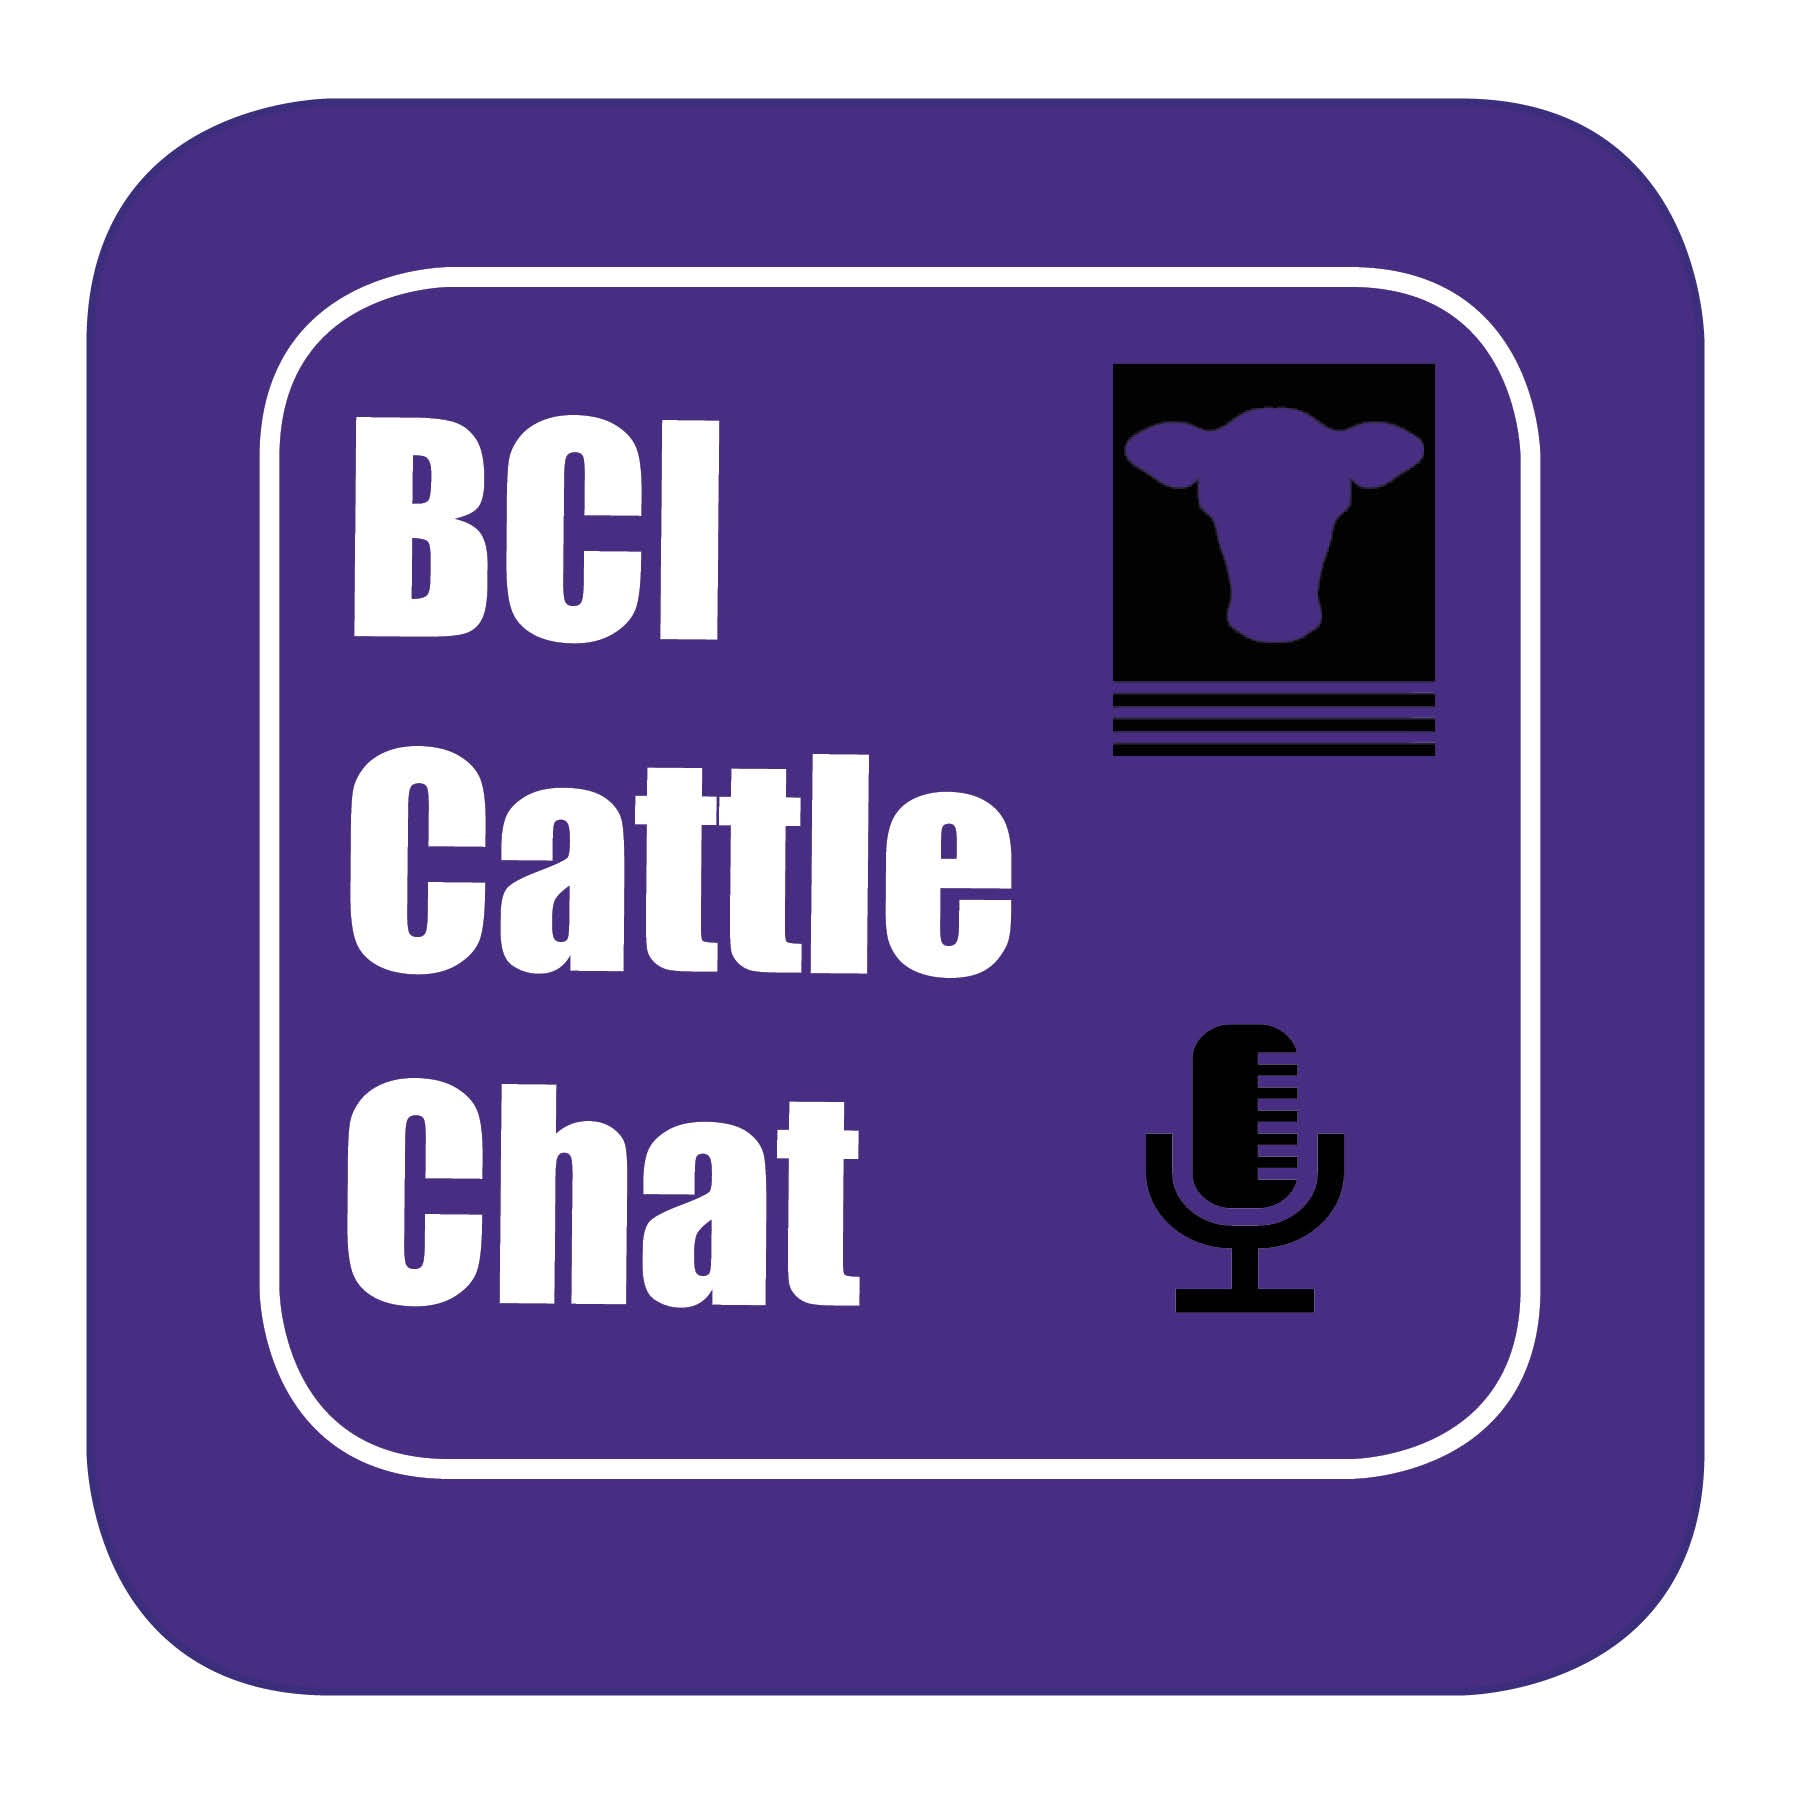 BCI Cattle Chat - Episode 7